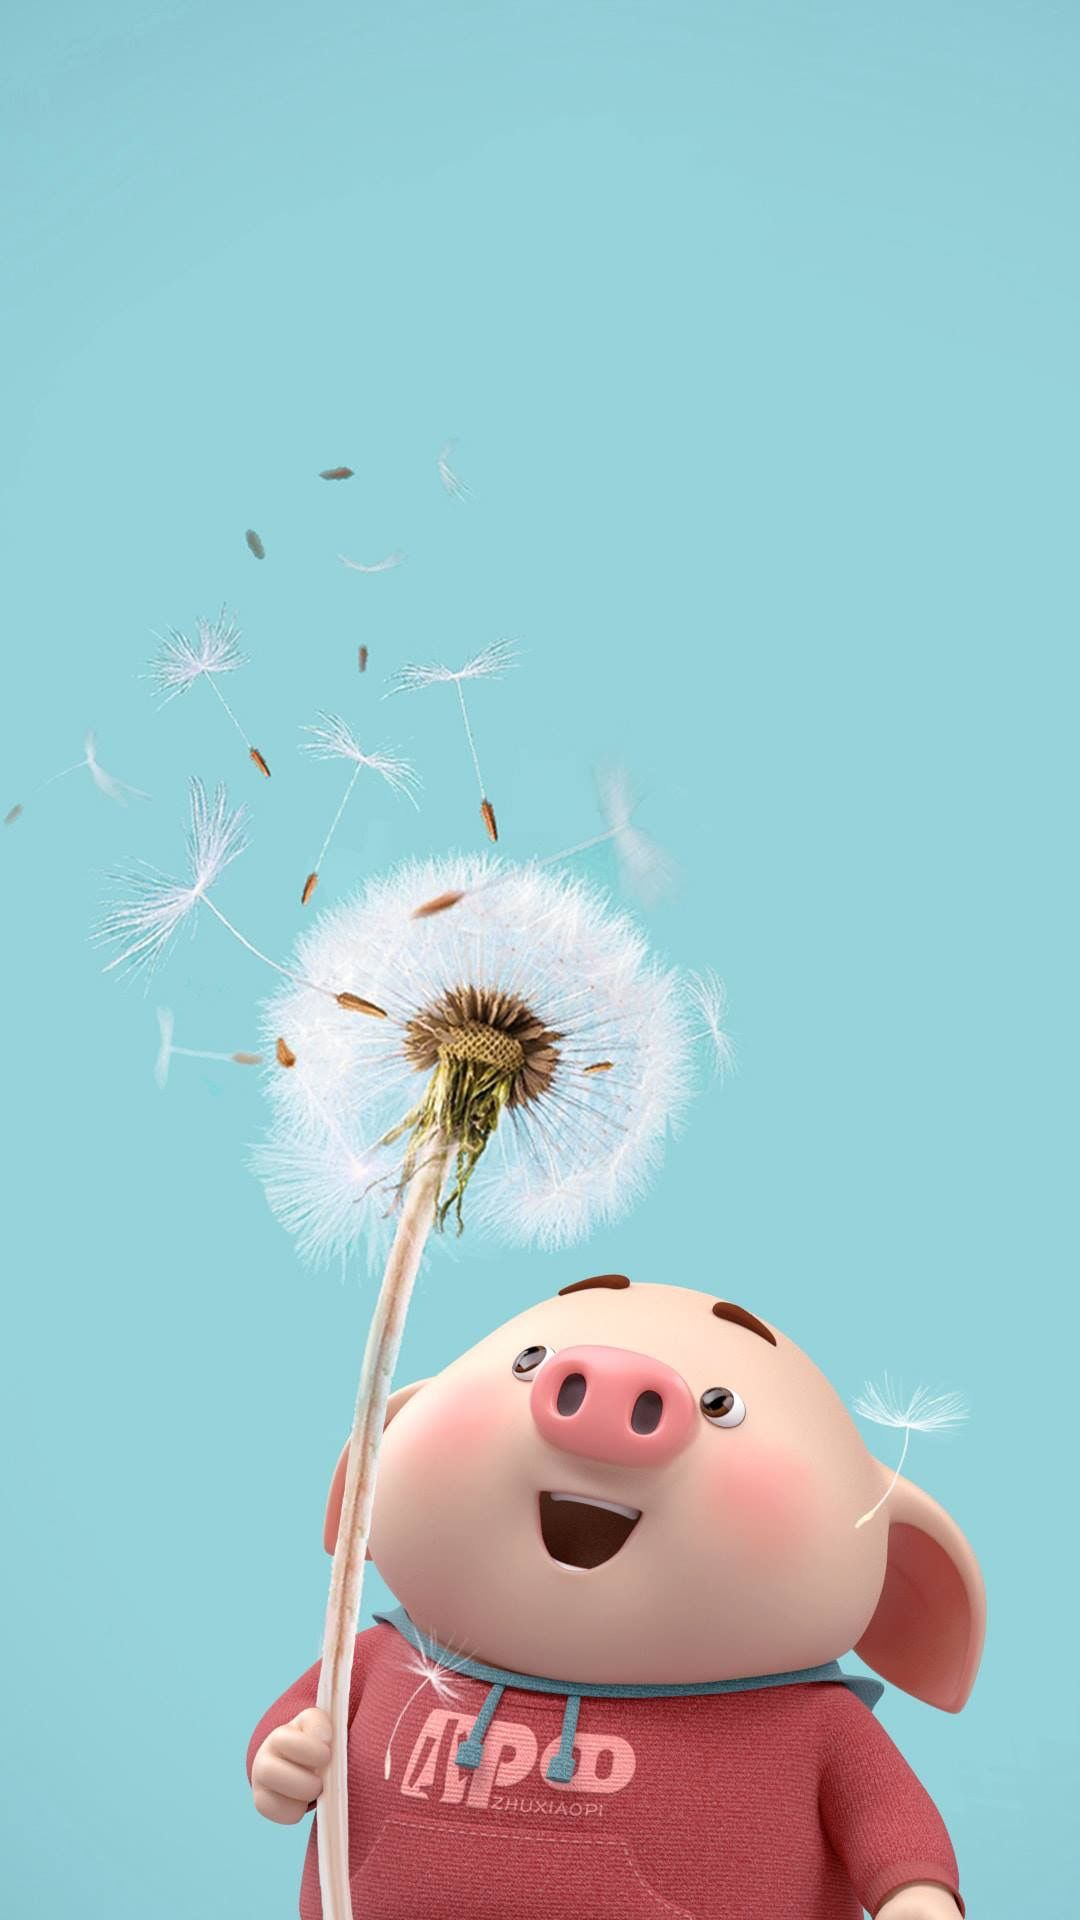 Pin By Thảo Trang On Pig In 2019 Pig Wallpaper Cute